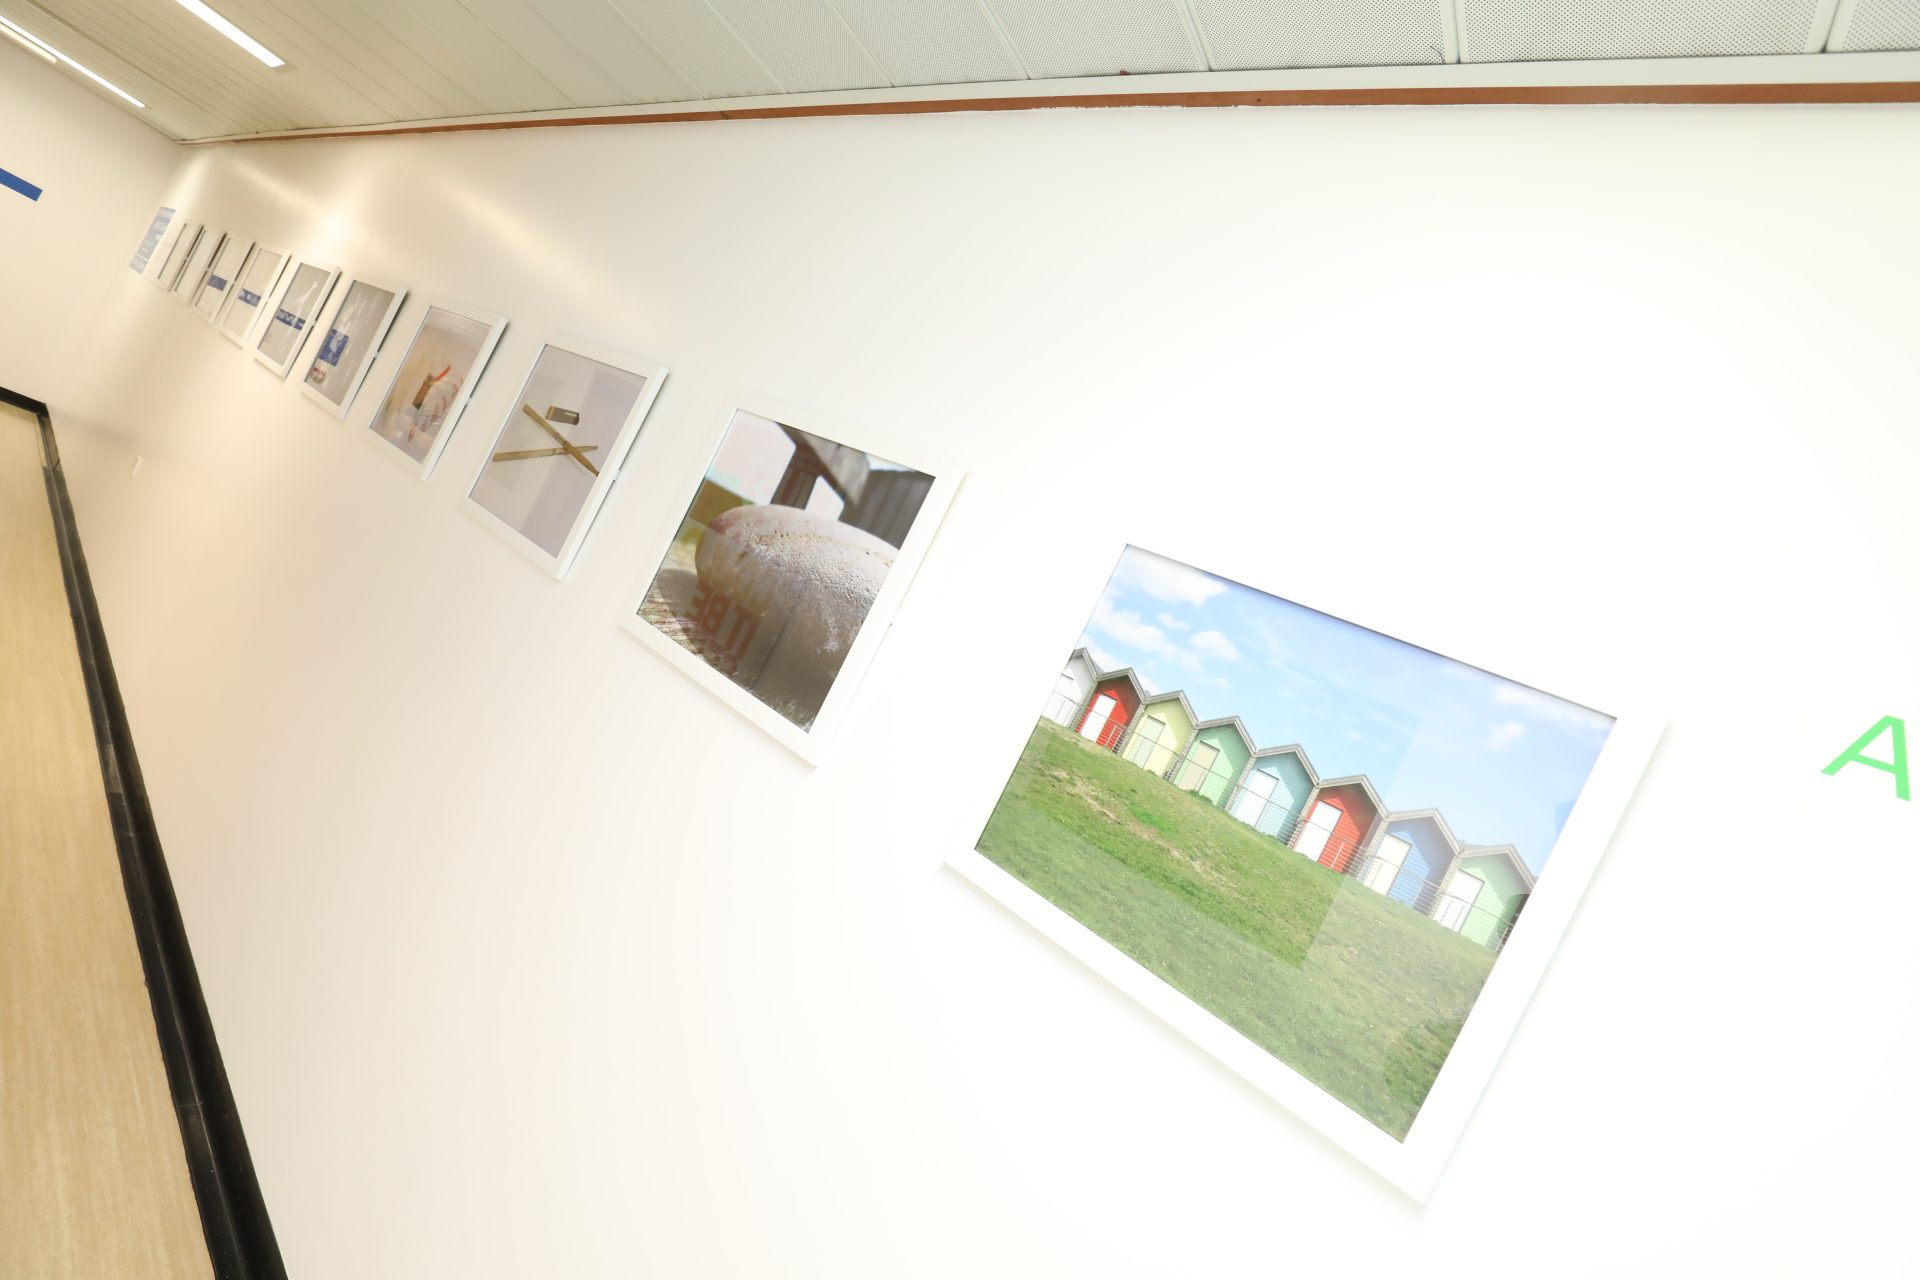 Photography exhibition by Bede Academy on display at Blyth Community Hospital